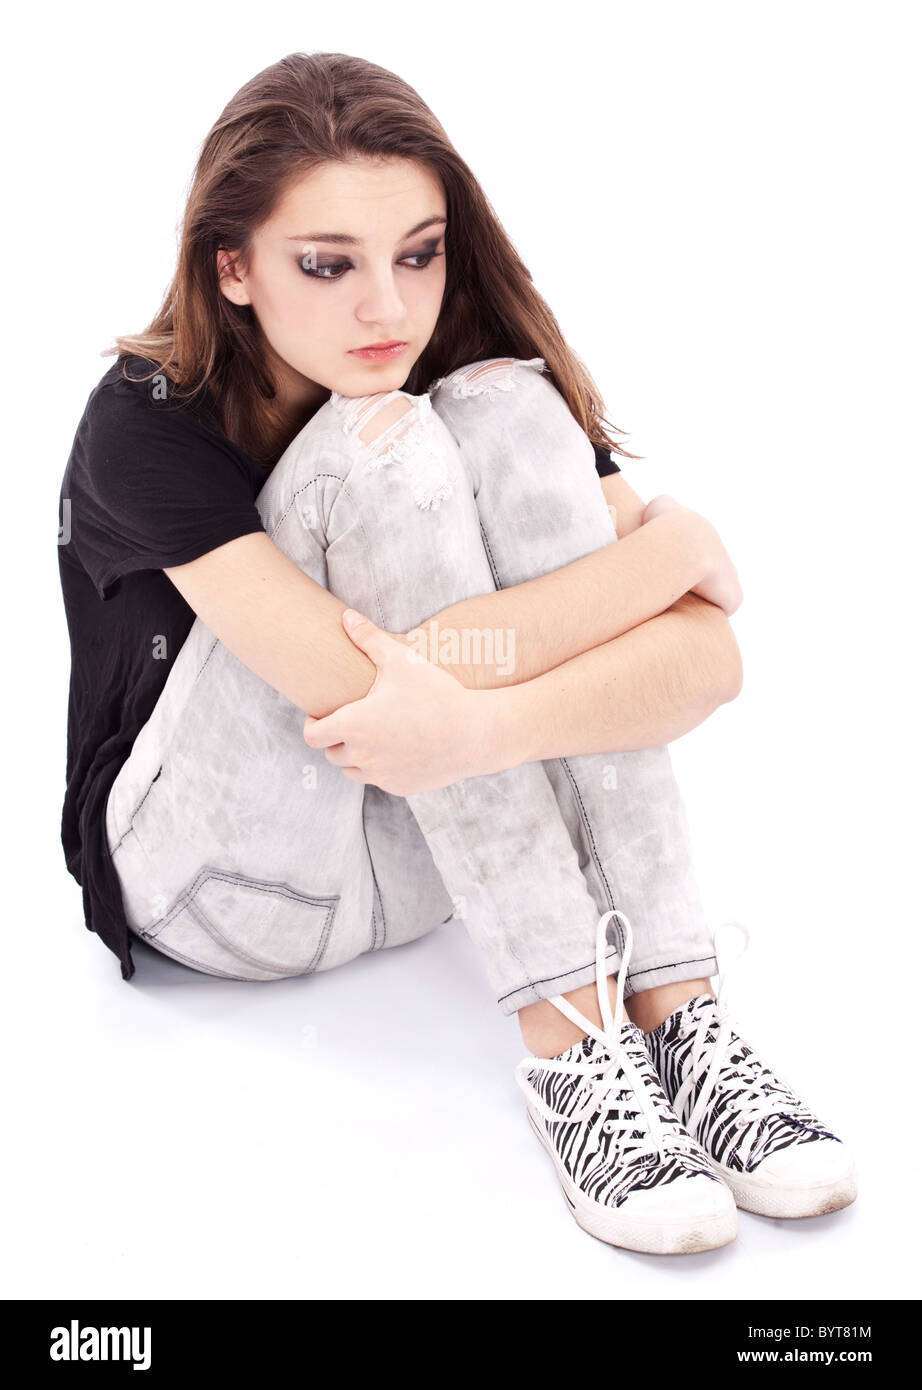 Sad girl teenager sits twining arms about legs. Isolated on a white background. - Stock Image